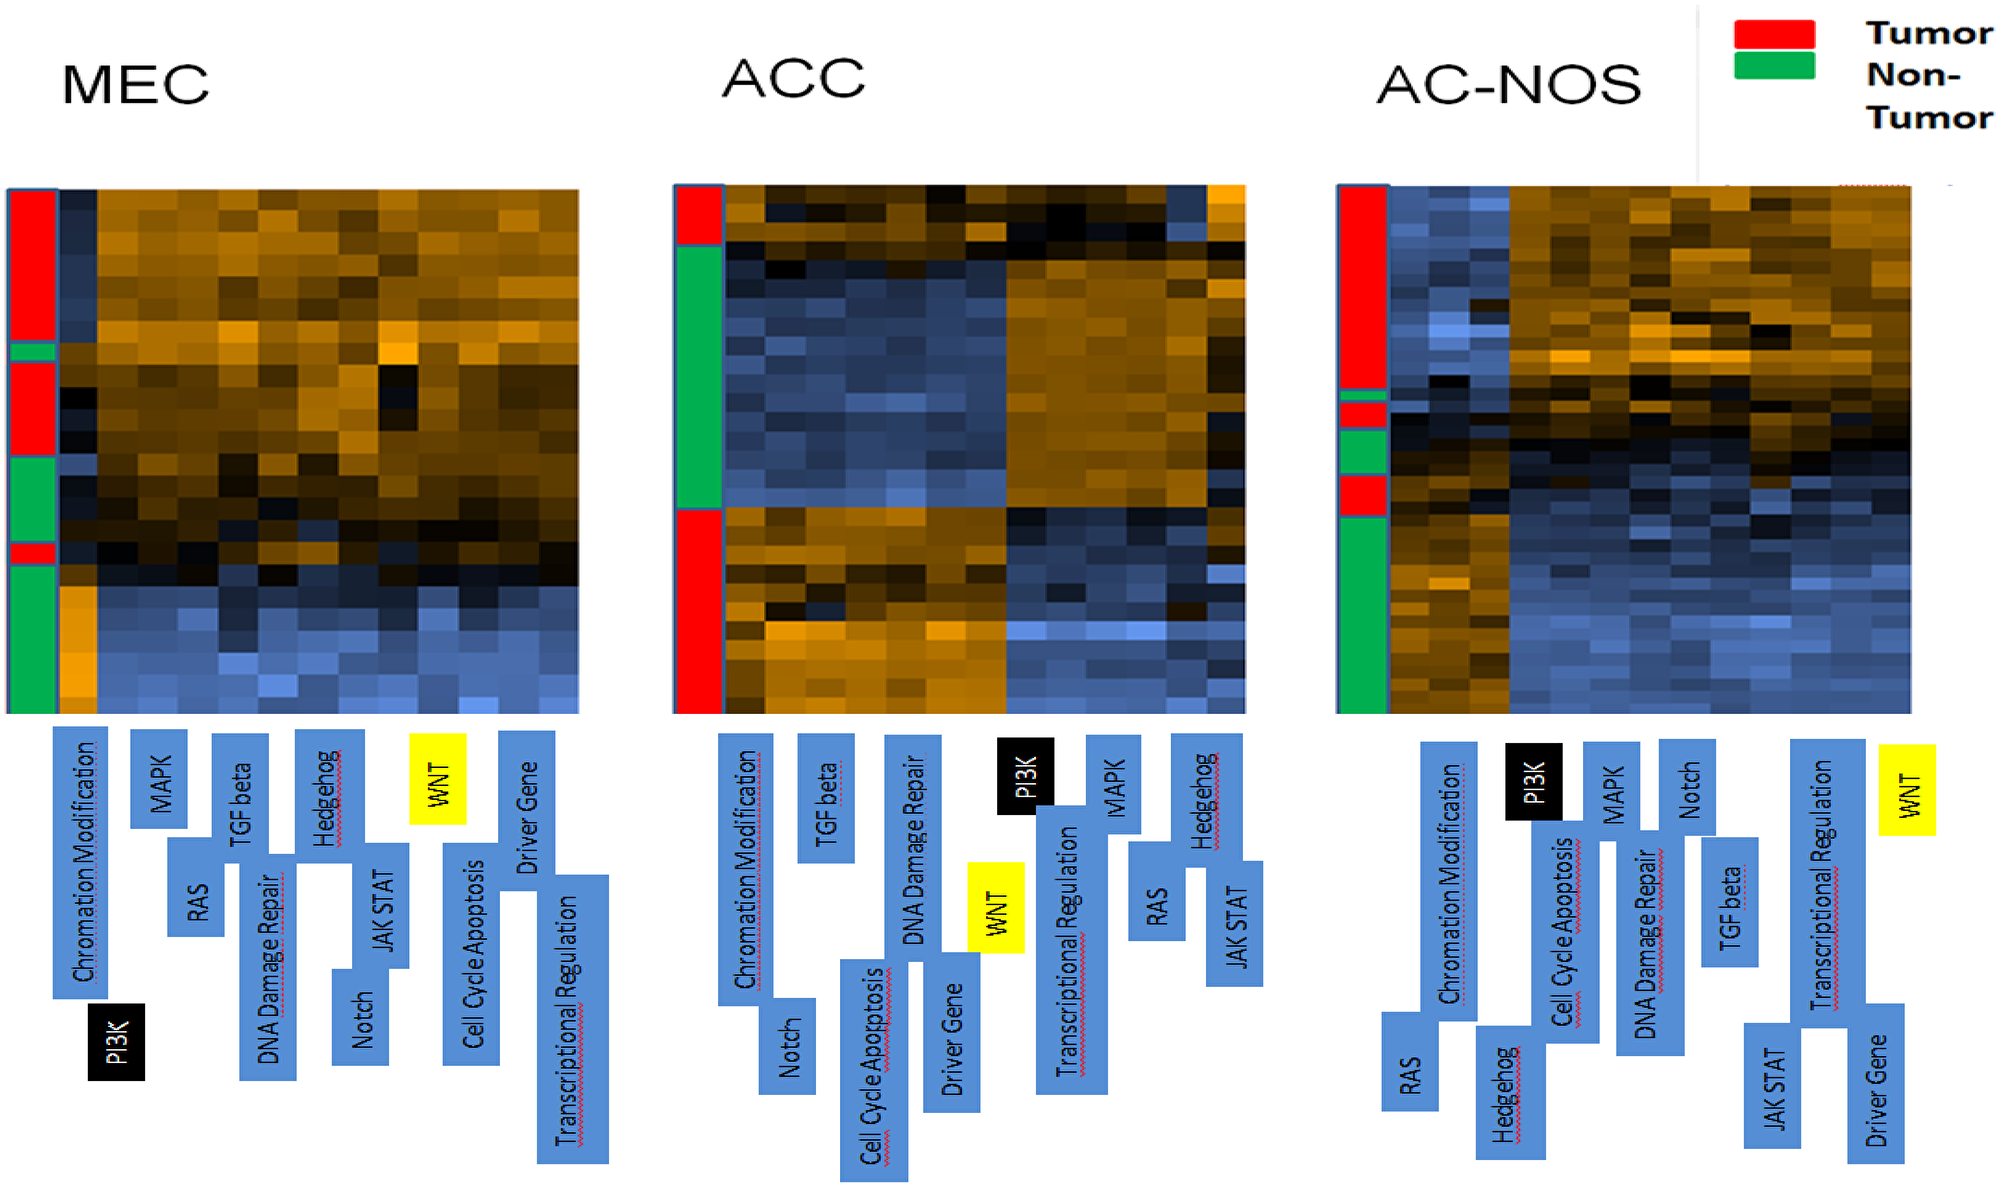 Cluster analysis of patient tumor samples and corresponding non-tumor of each tumor entity (MEC, ACC, AC-NOS).